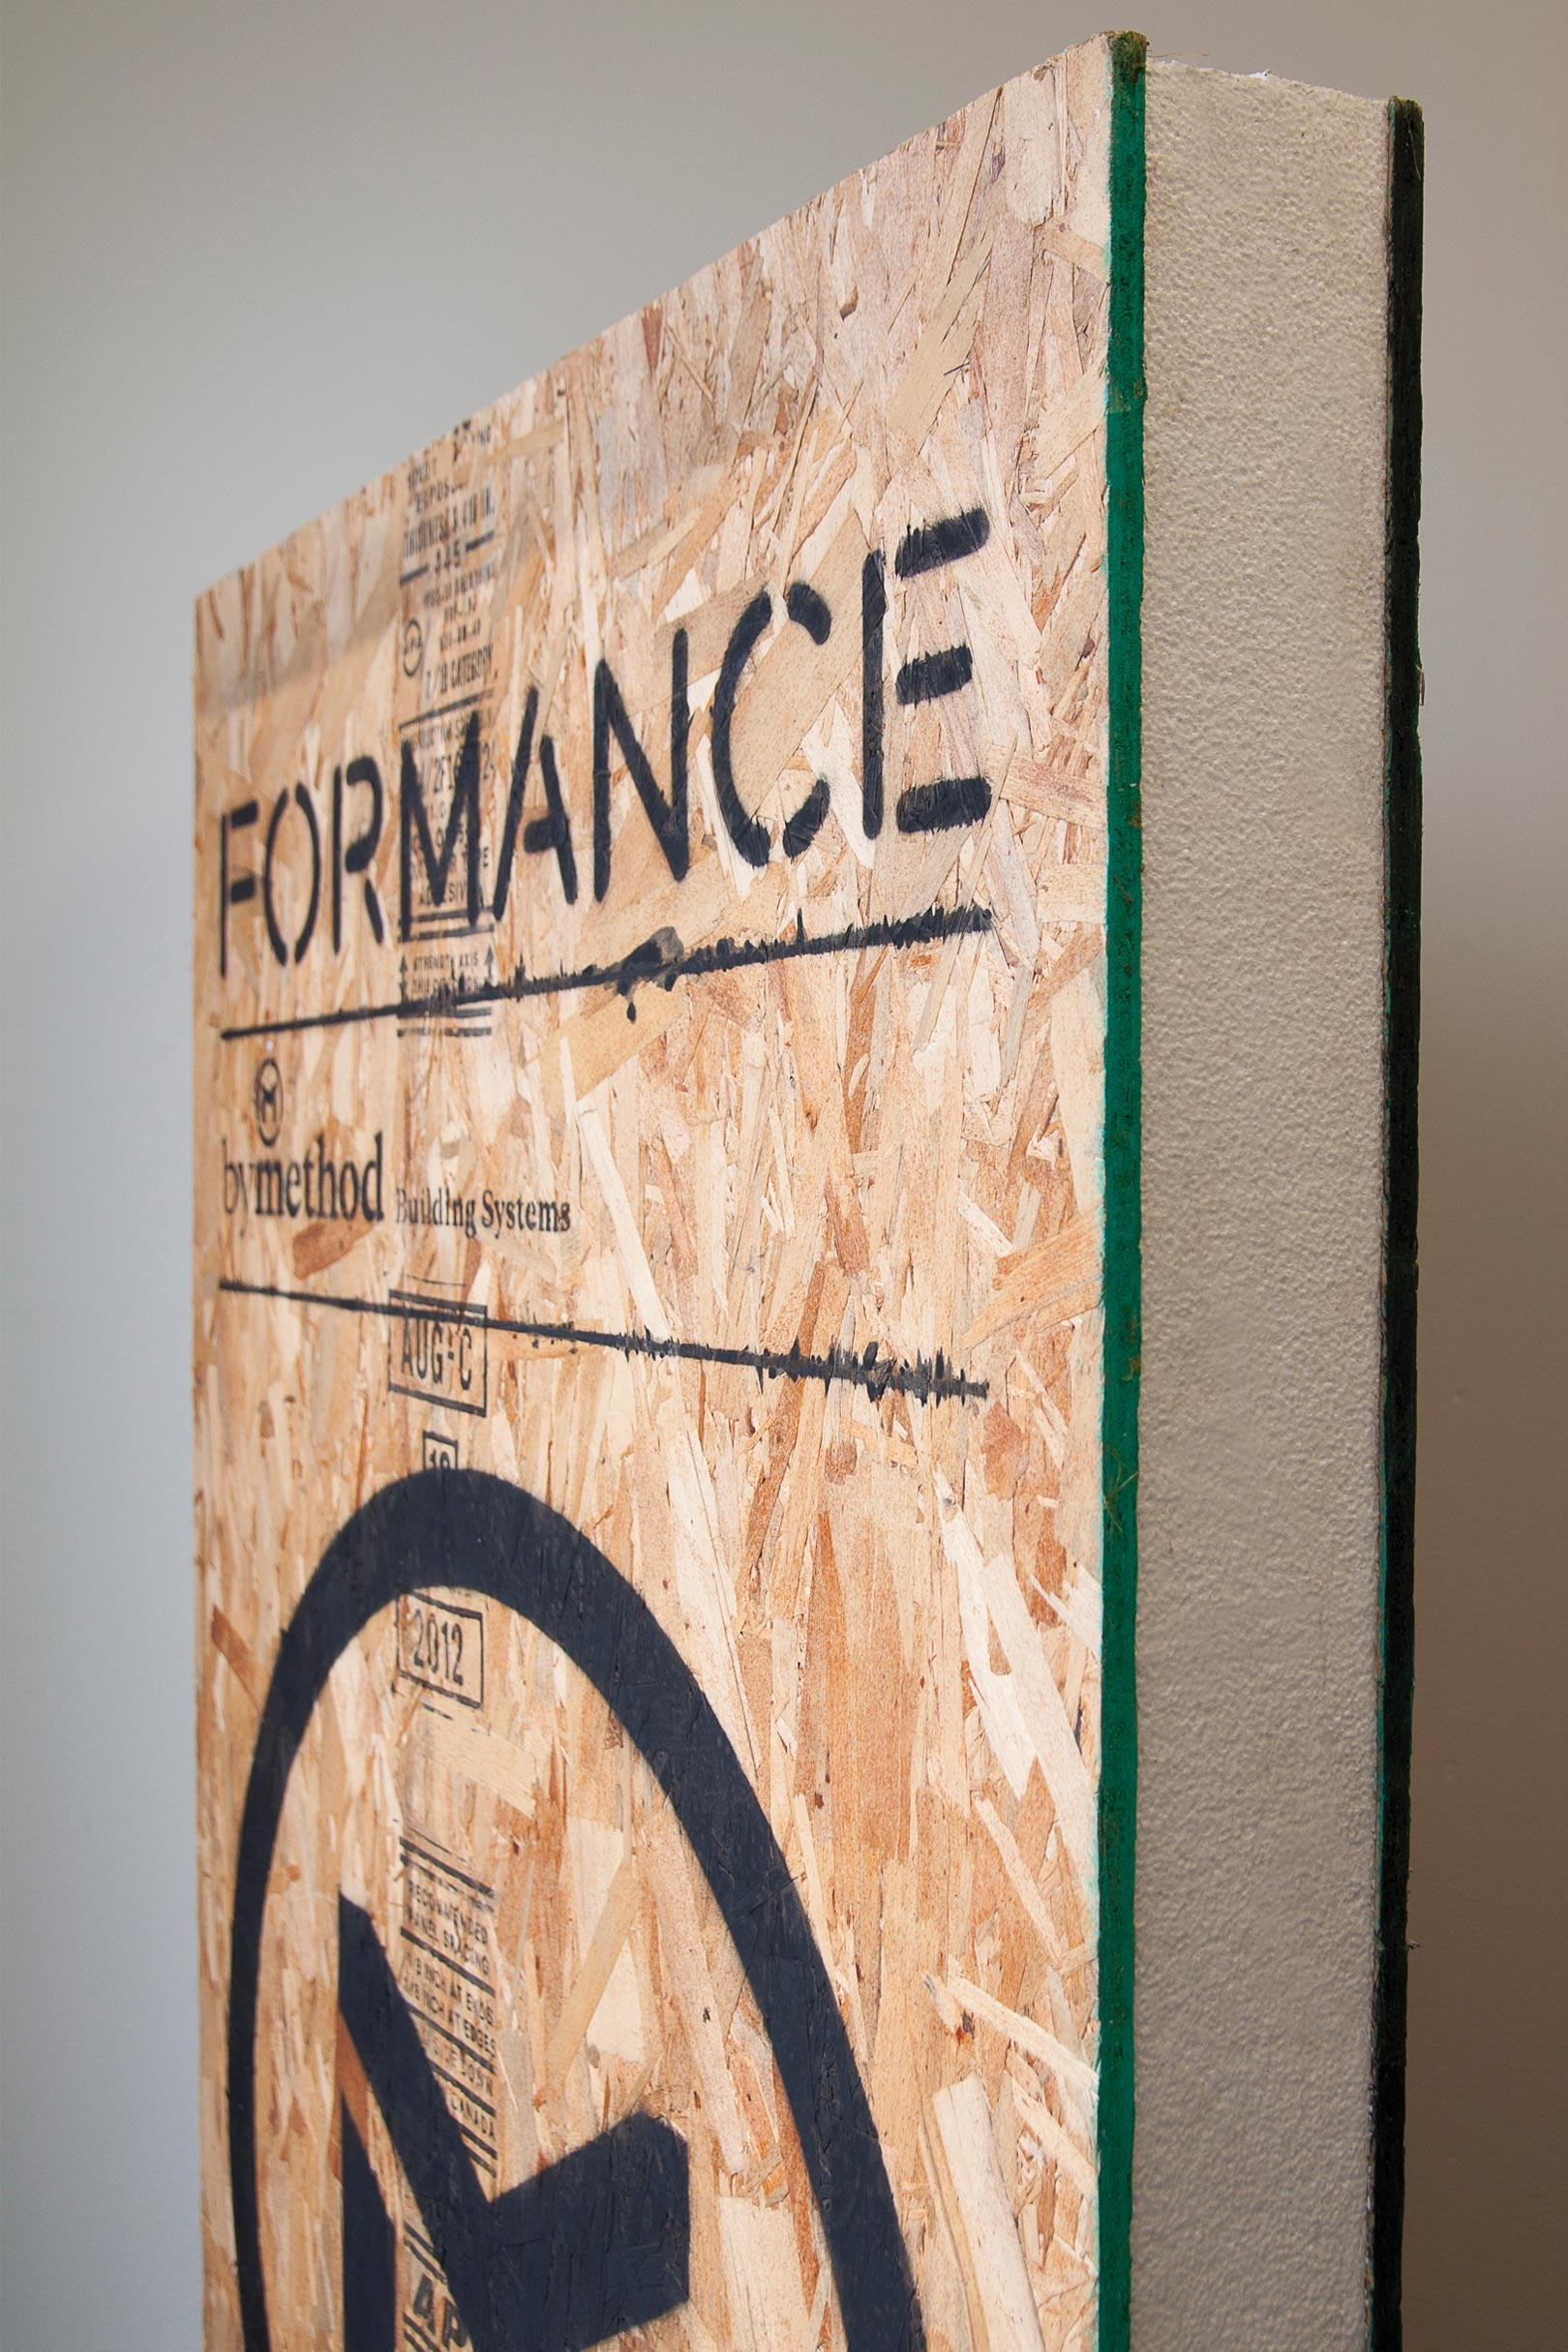 Formance SIPs by Method Building Systems